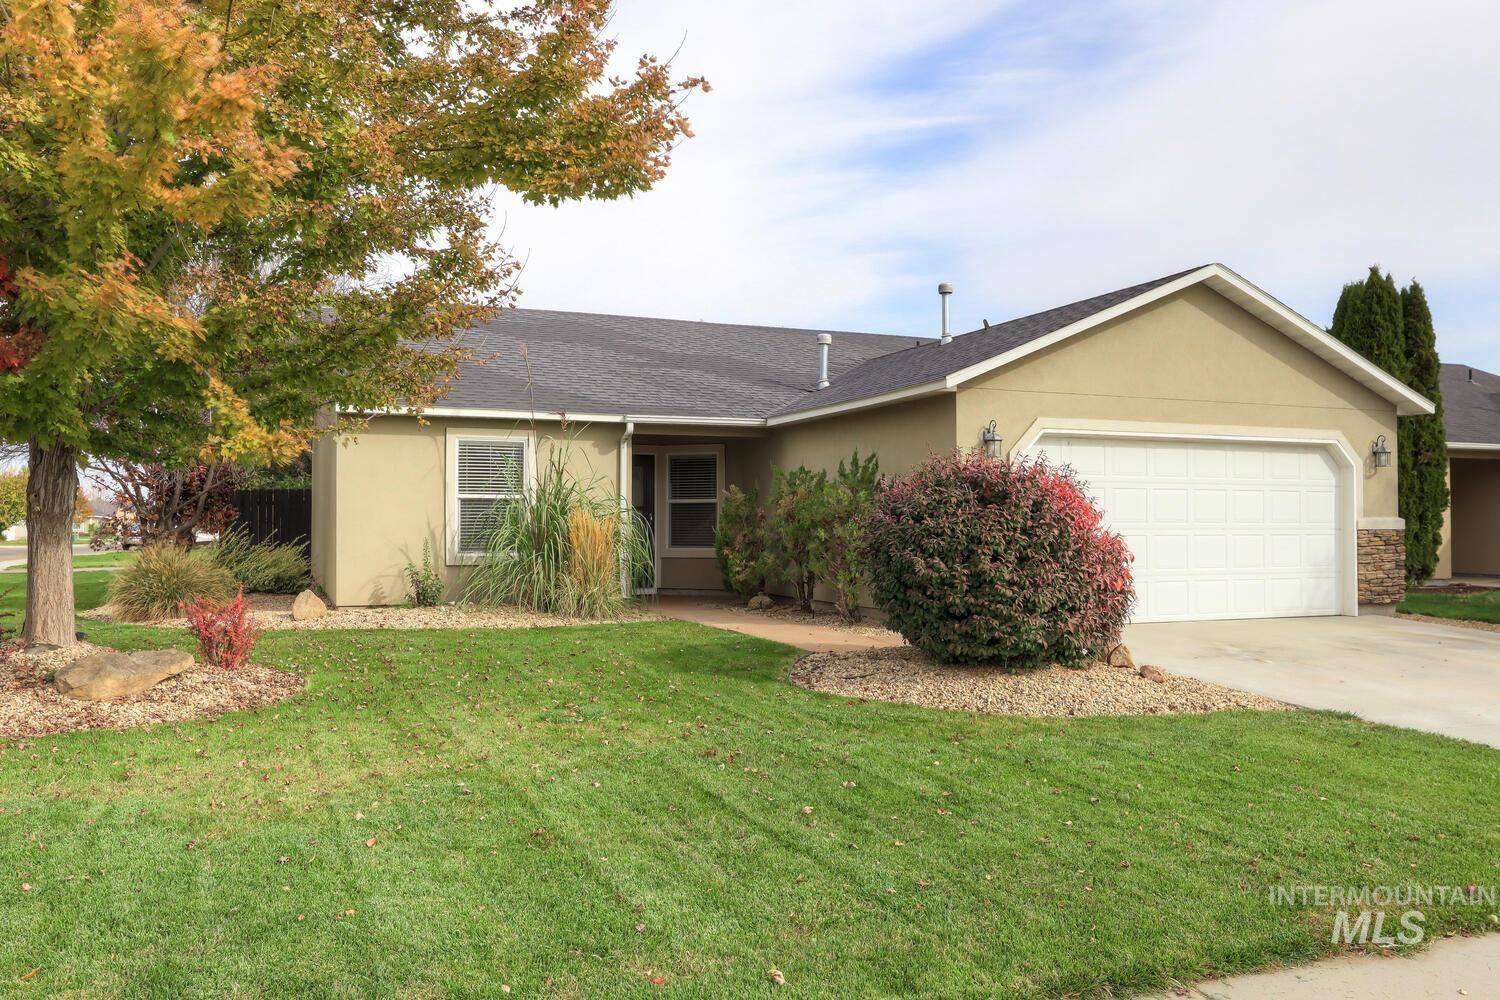 3217 Central Park St, Caldwell, ID 83605-8096 - MLS#: 98821592